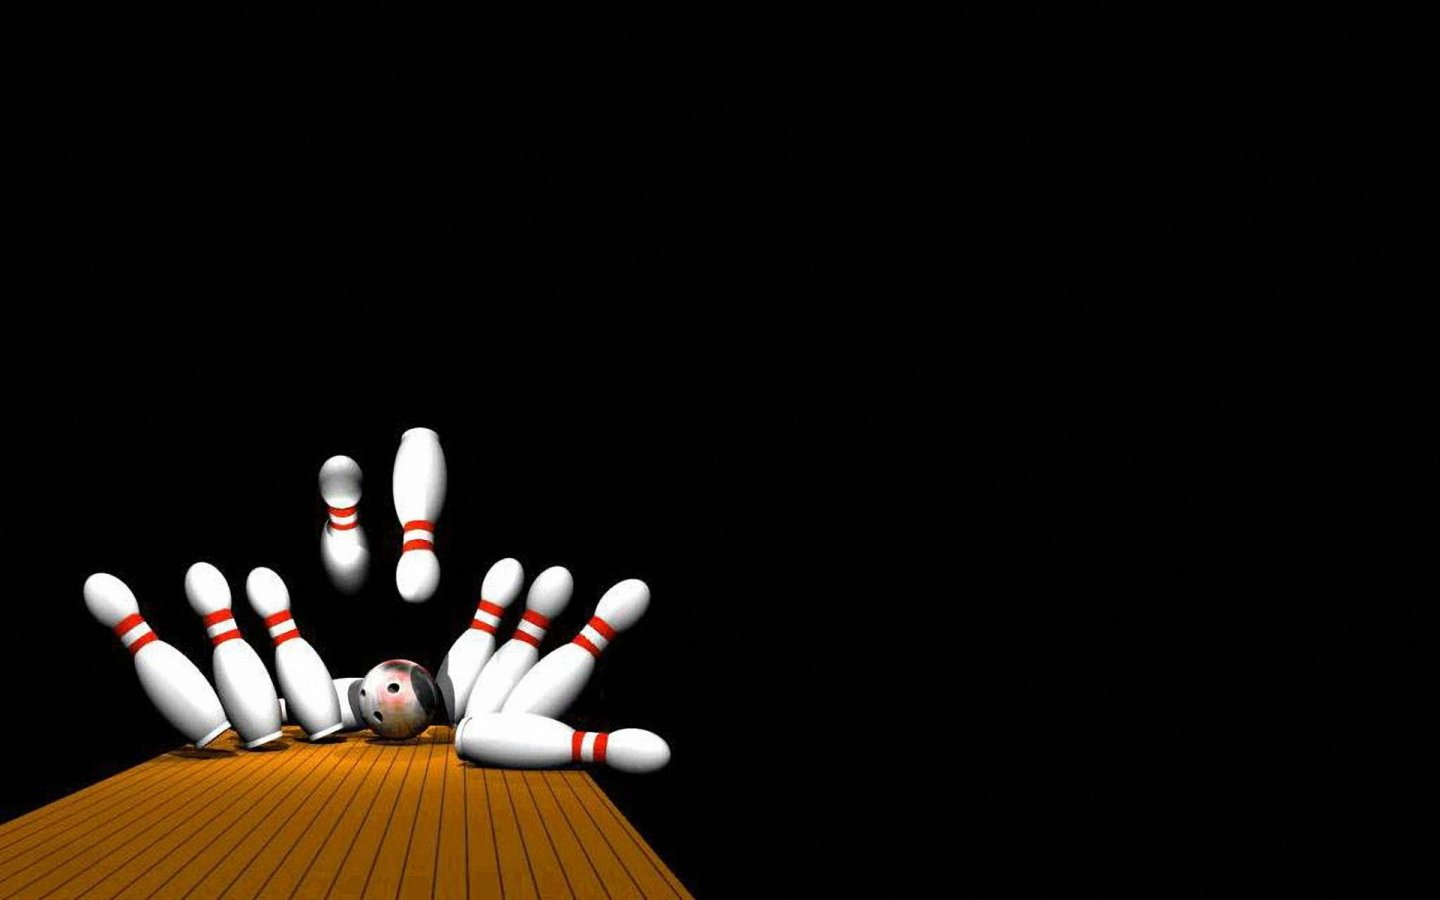 1440x900 - Bowling Wallpapers 14